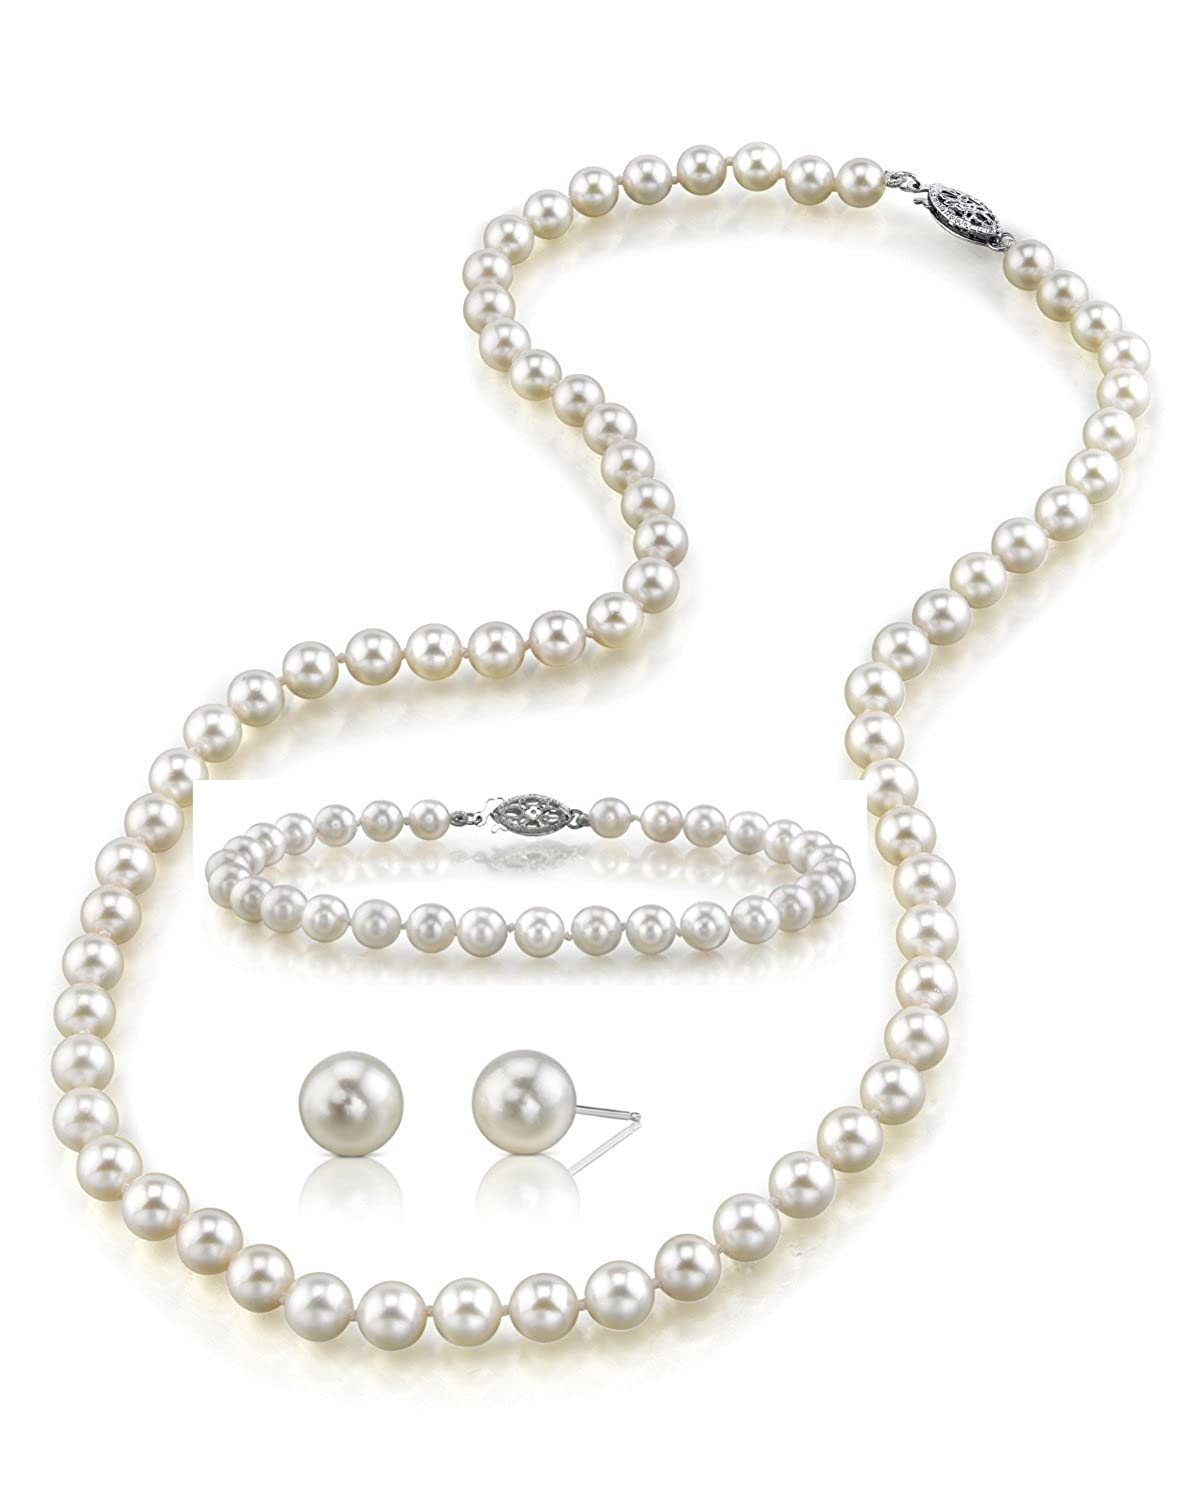 this pearls and strand three a the make crystal with design necklace lasting austrian pin stunning grace impression pearl